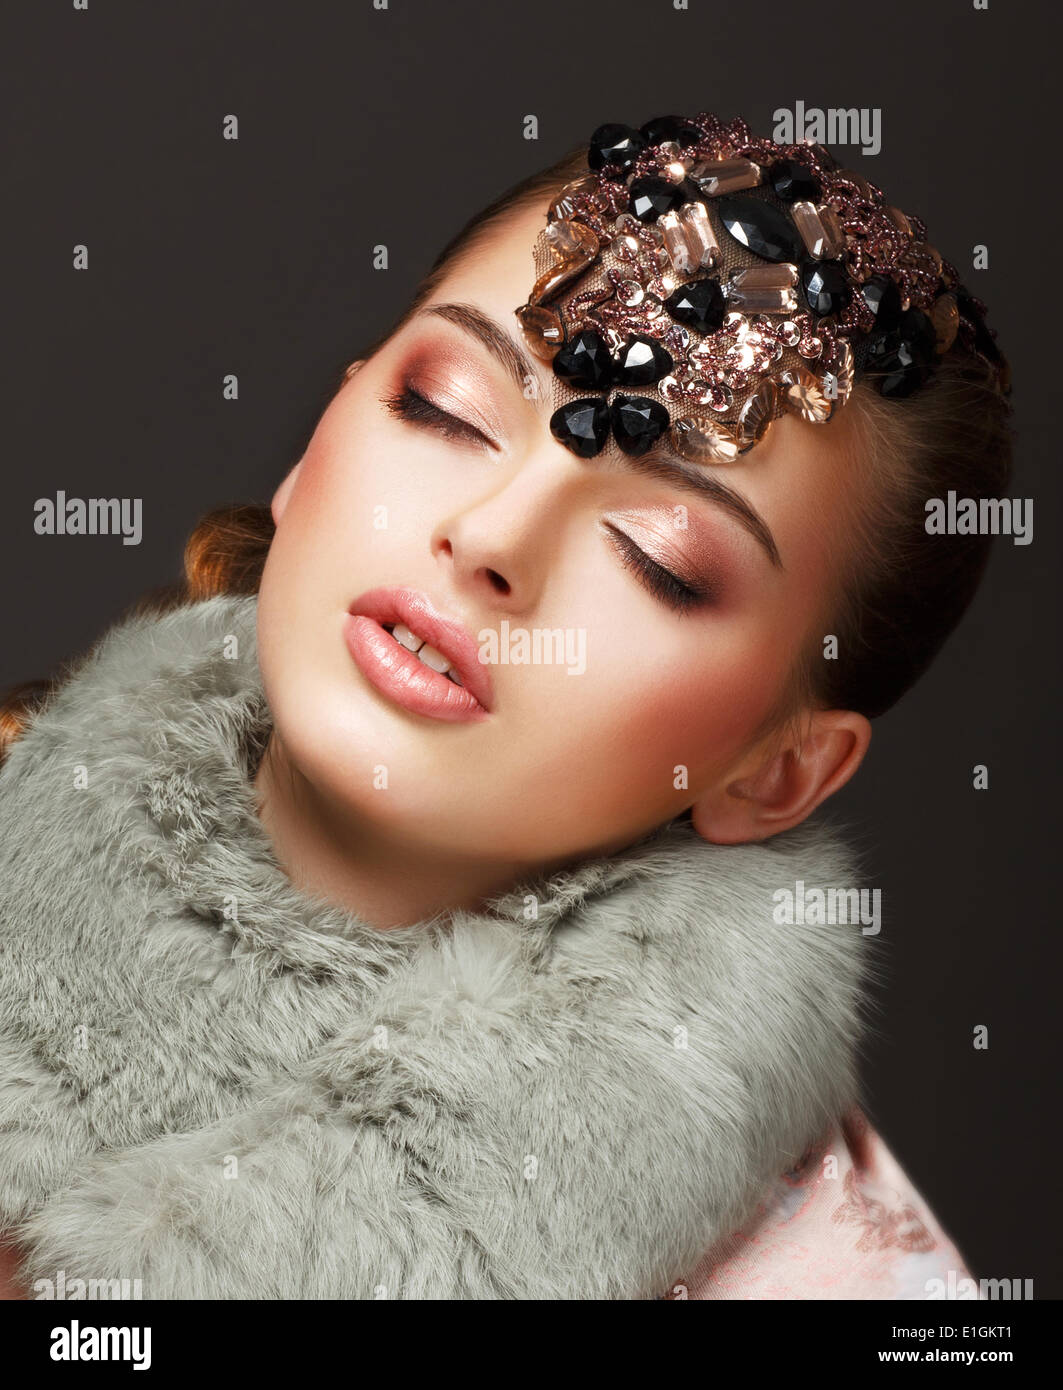 Passion. Glamorous Dreamy Woman in Fur Mantle and Jewels. Luxury - Stock Image